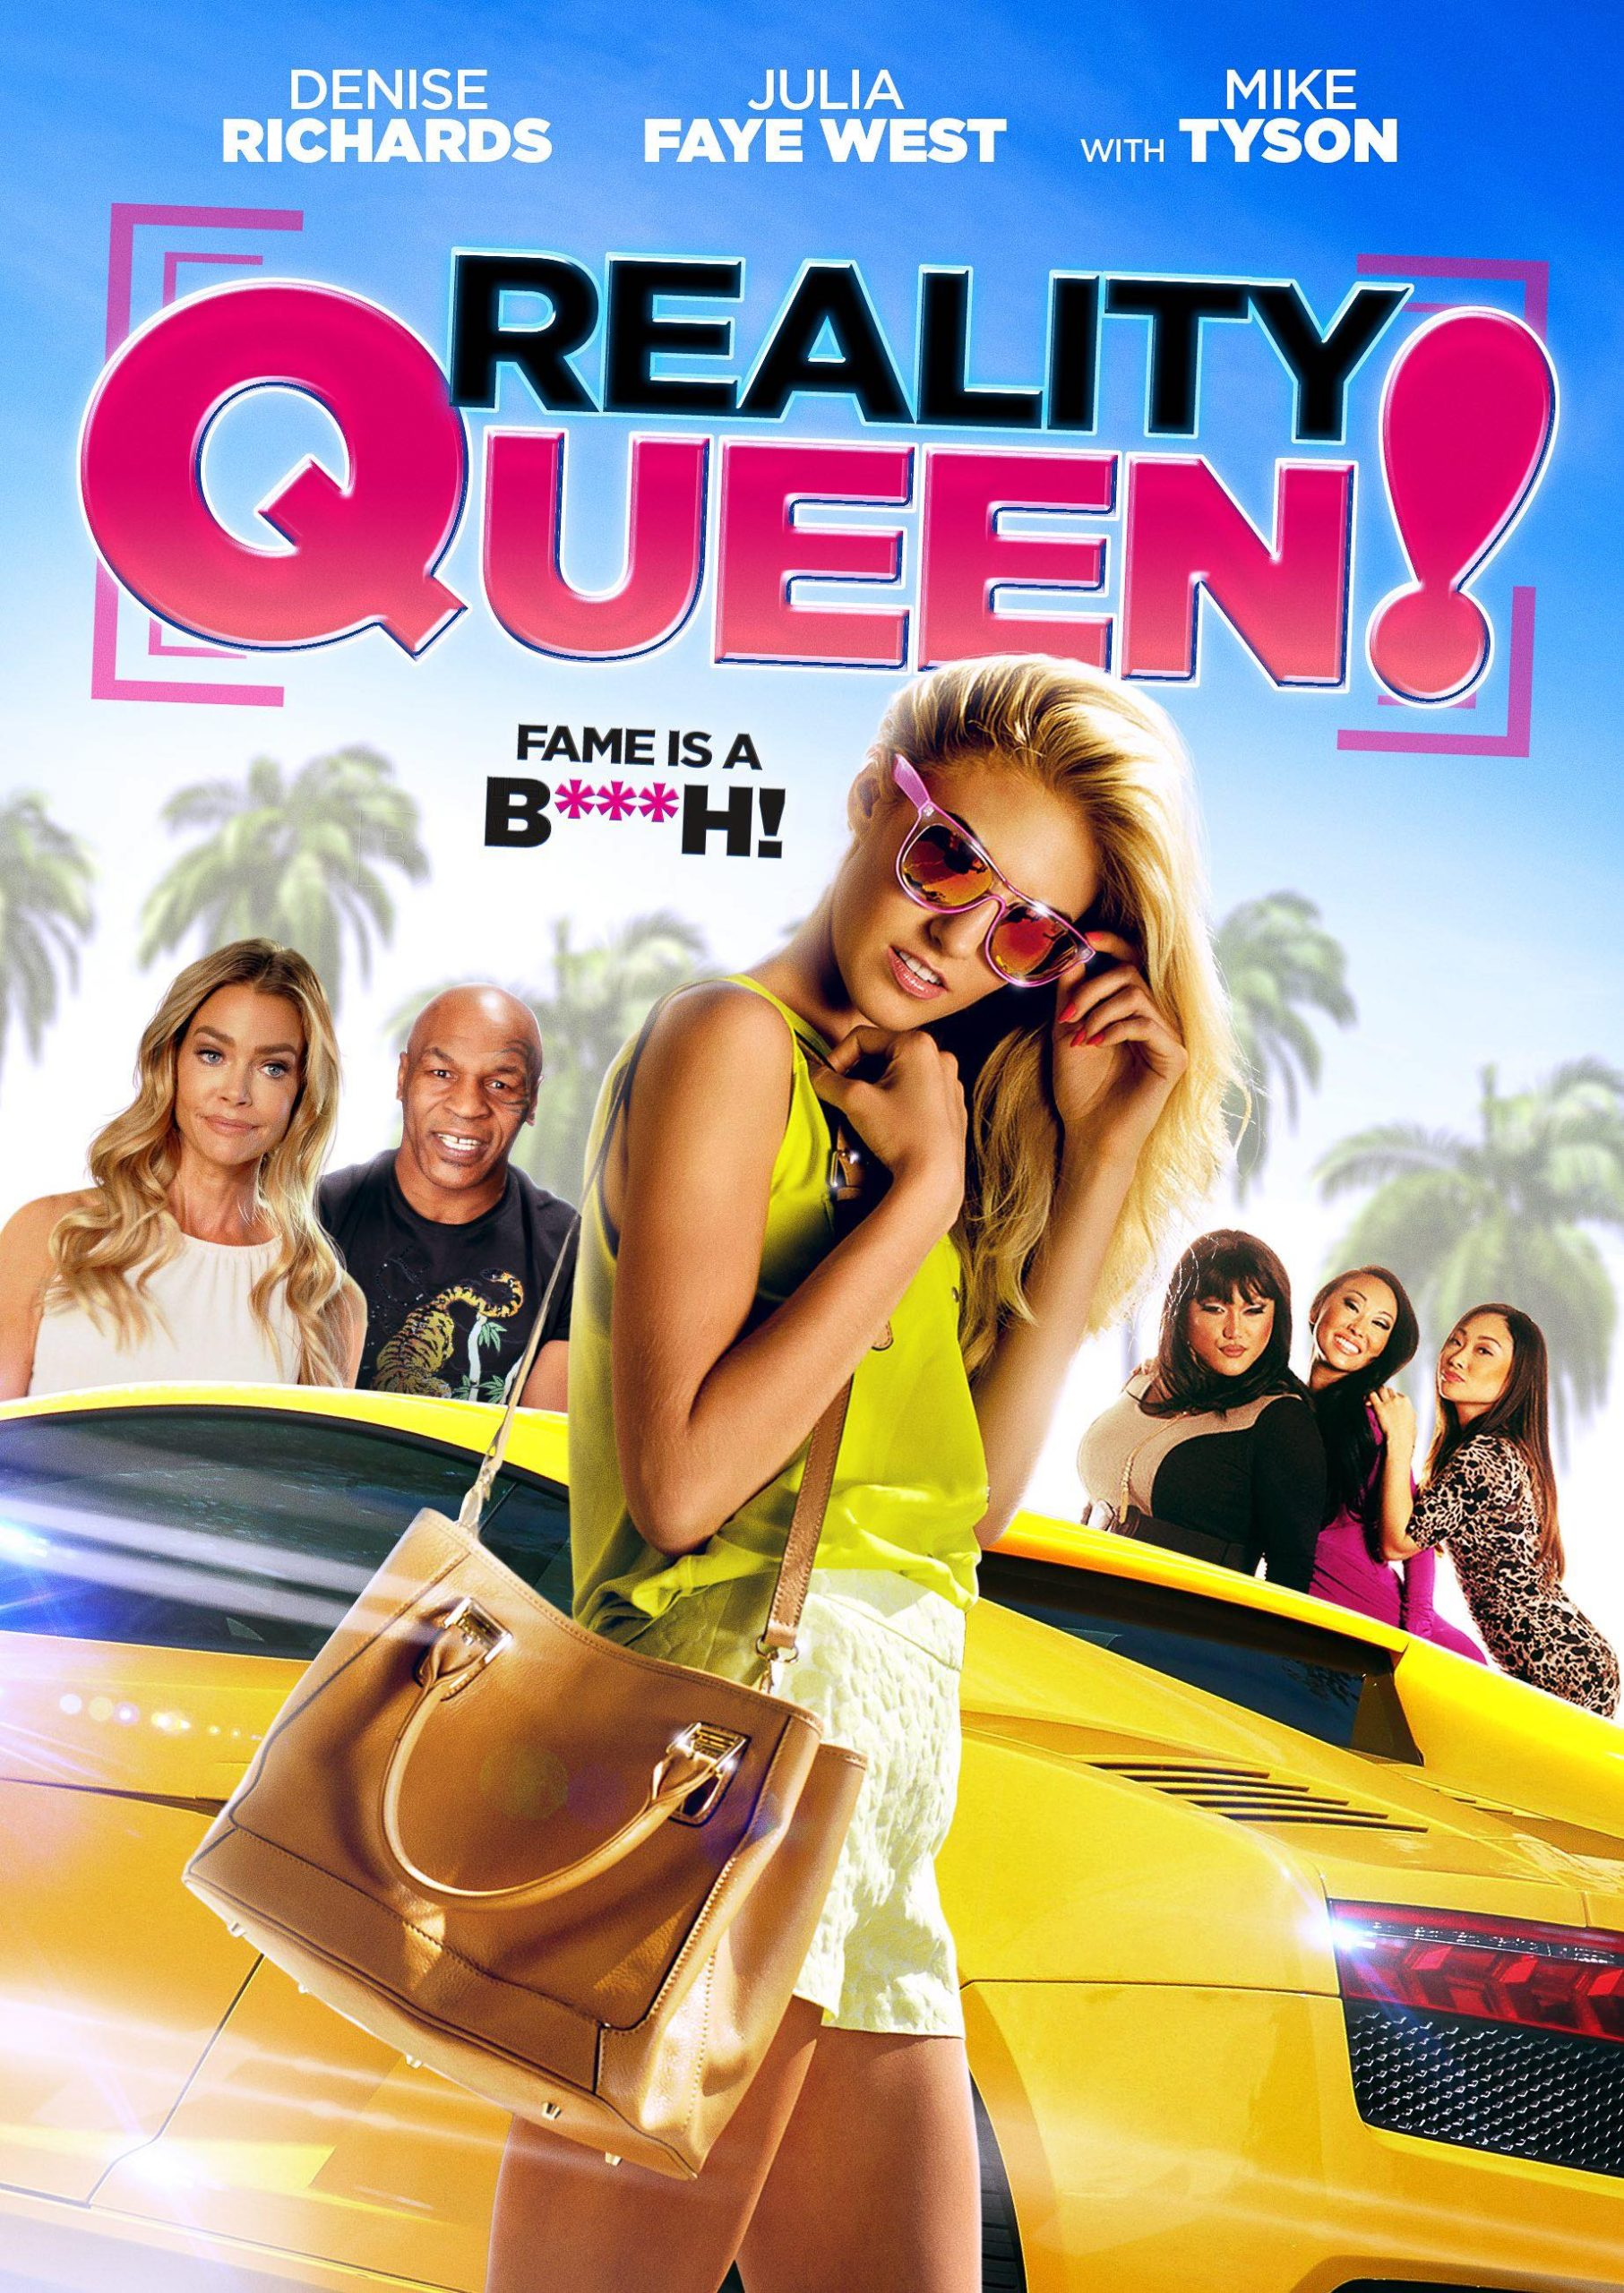 Reality Queen!, Denise Richards